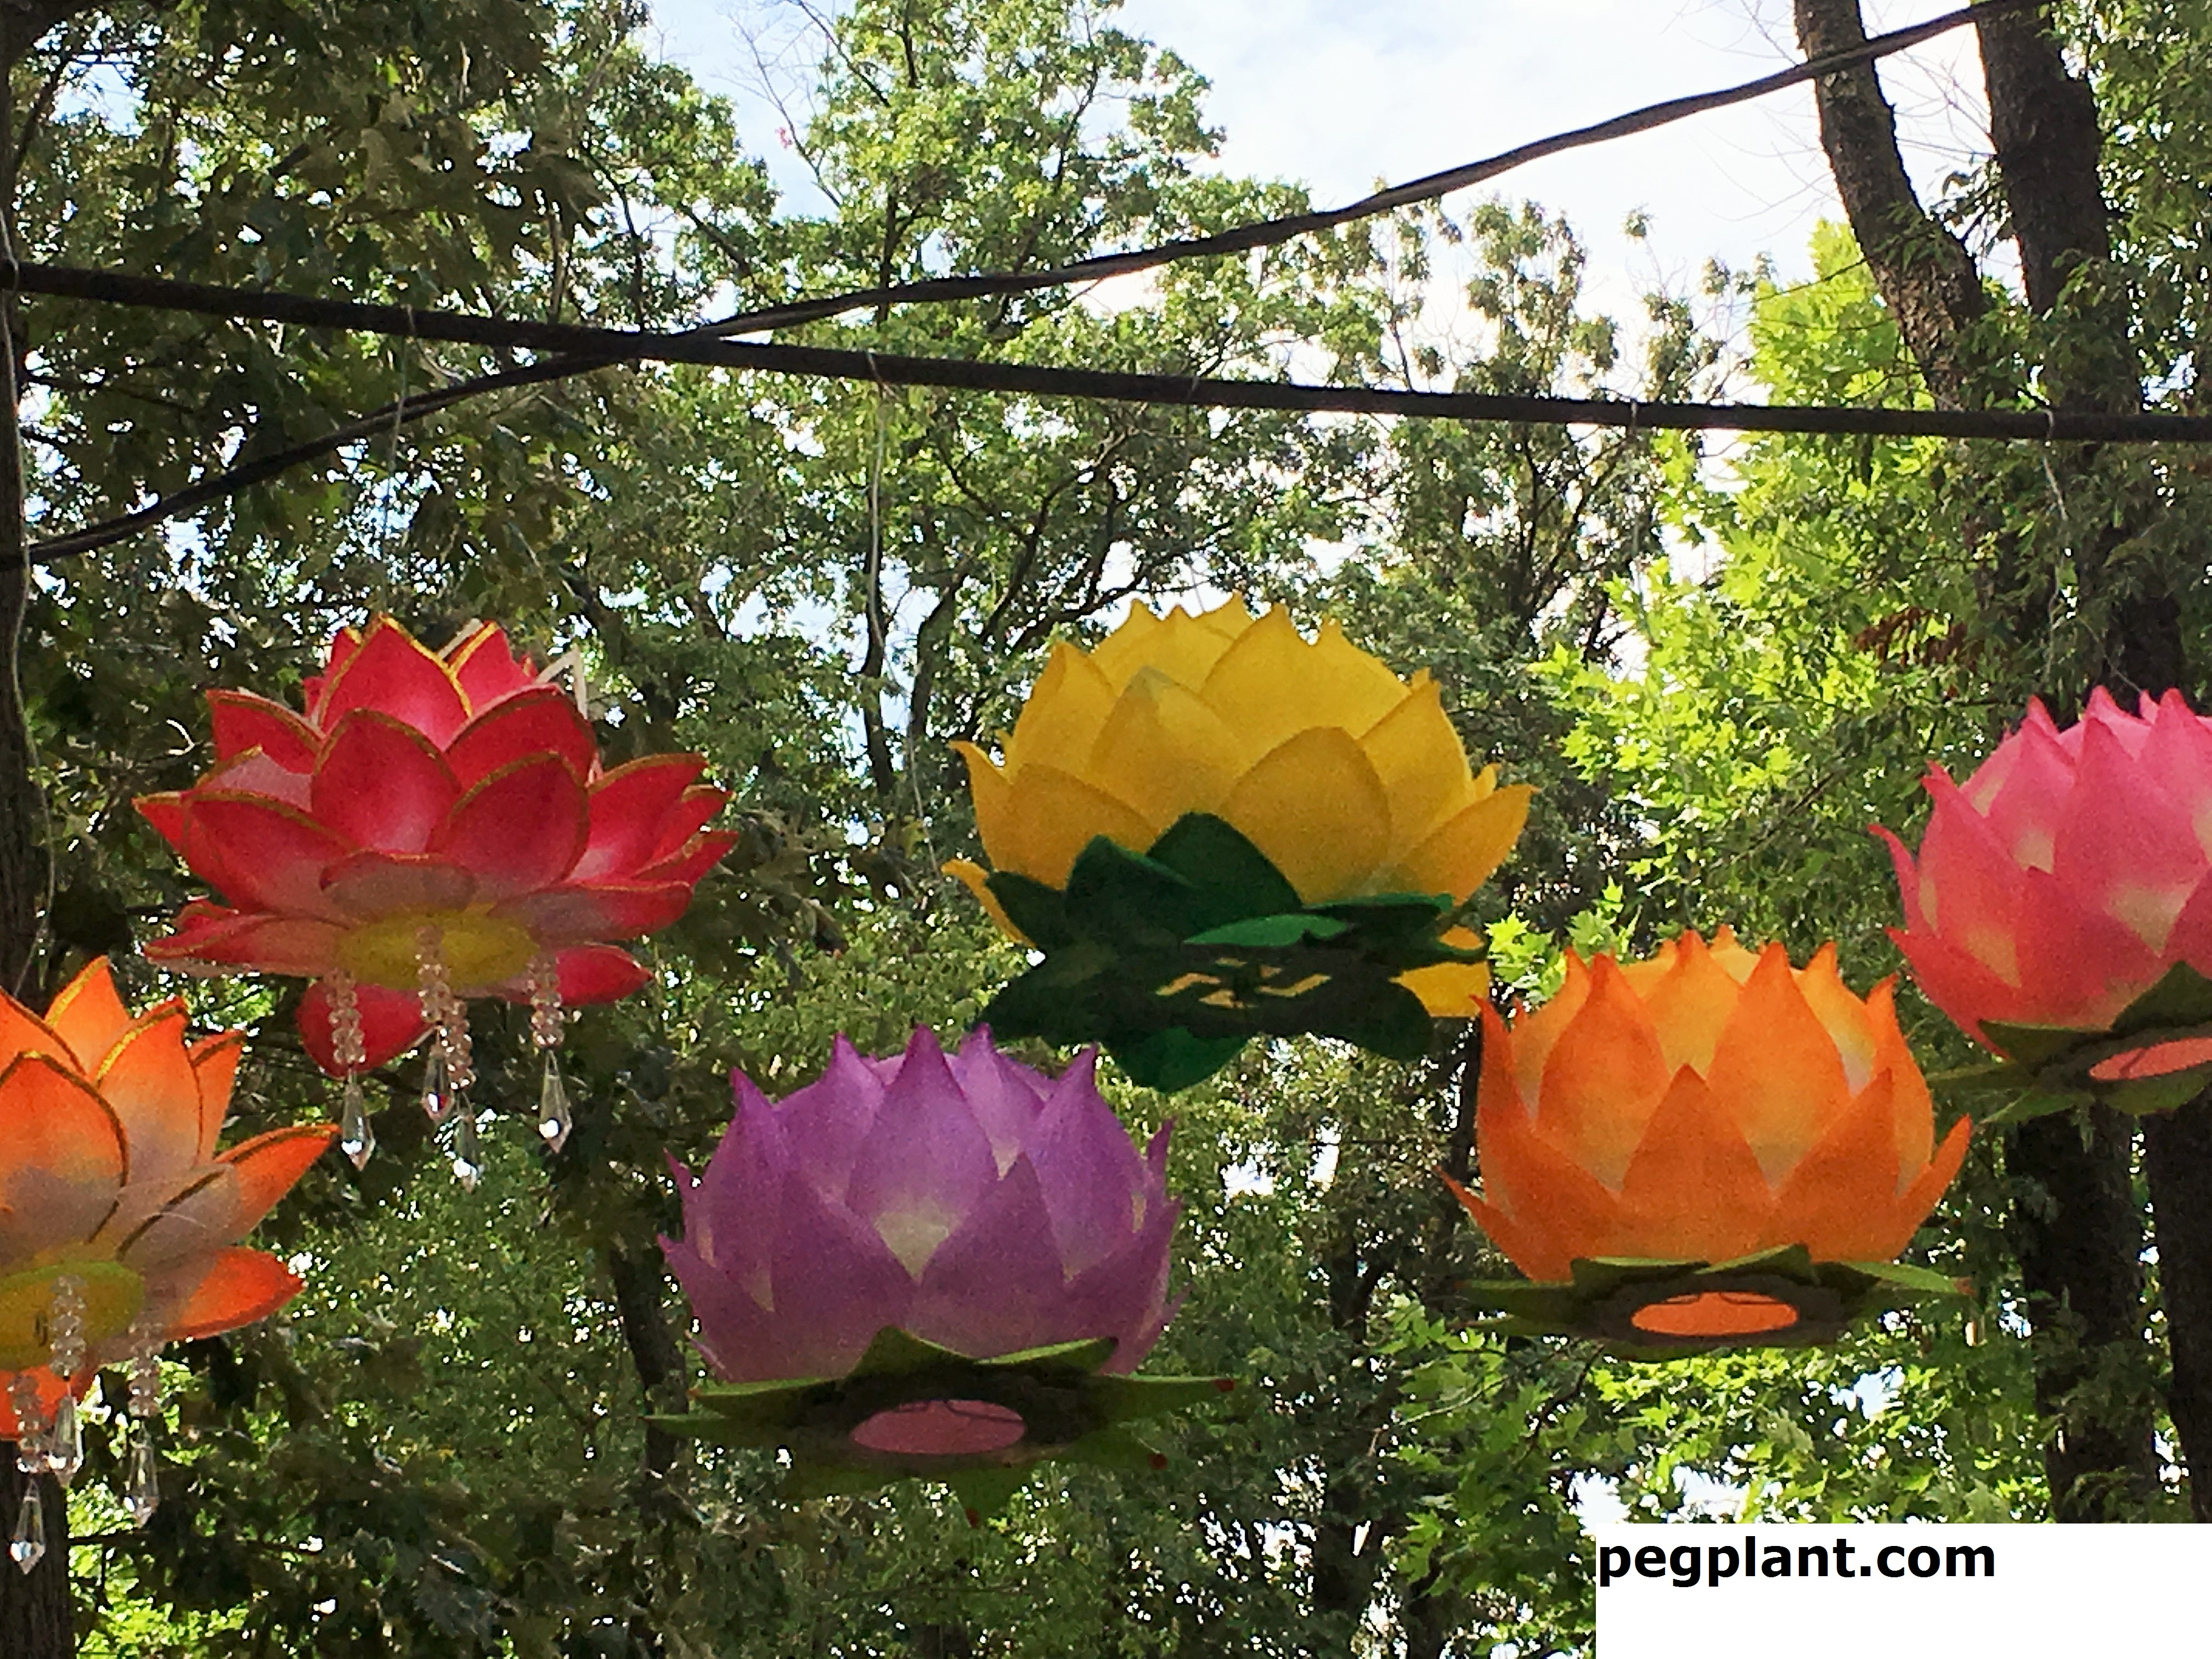 Amazing Lotus Flowers and Water Lilies at Kenilworth Park and